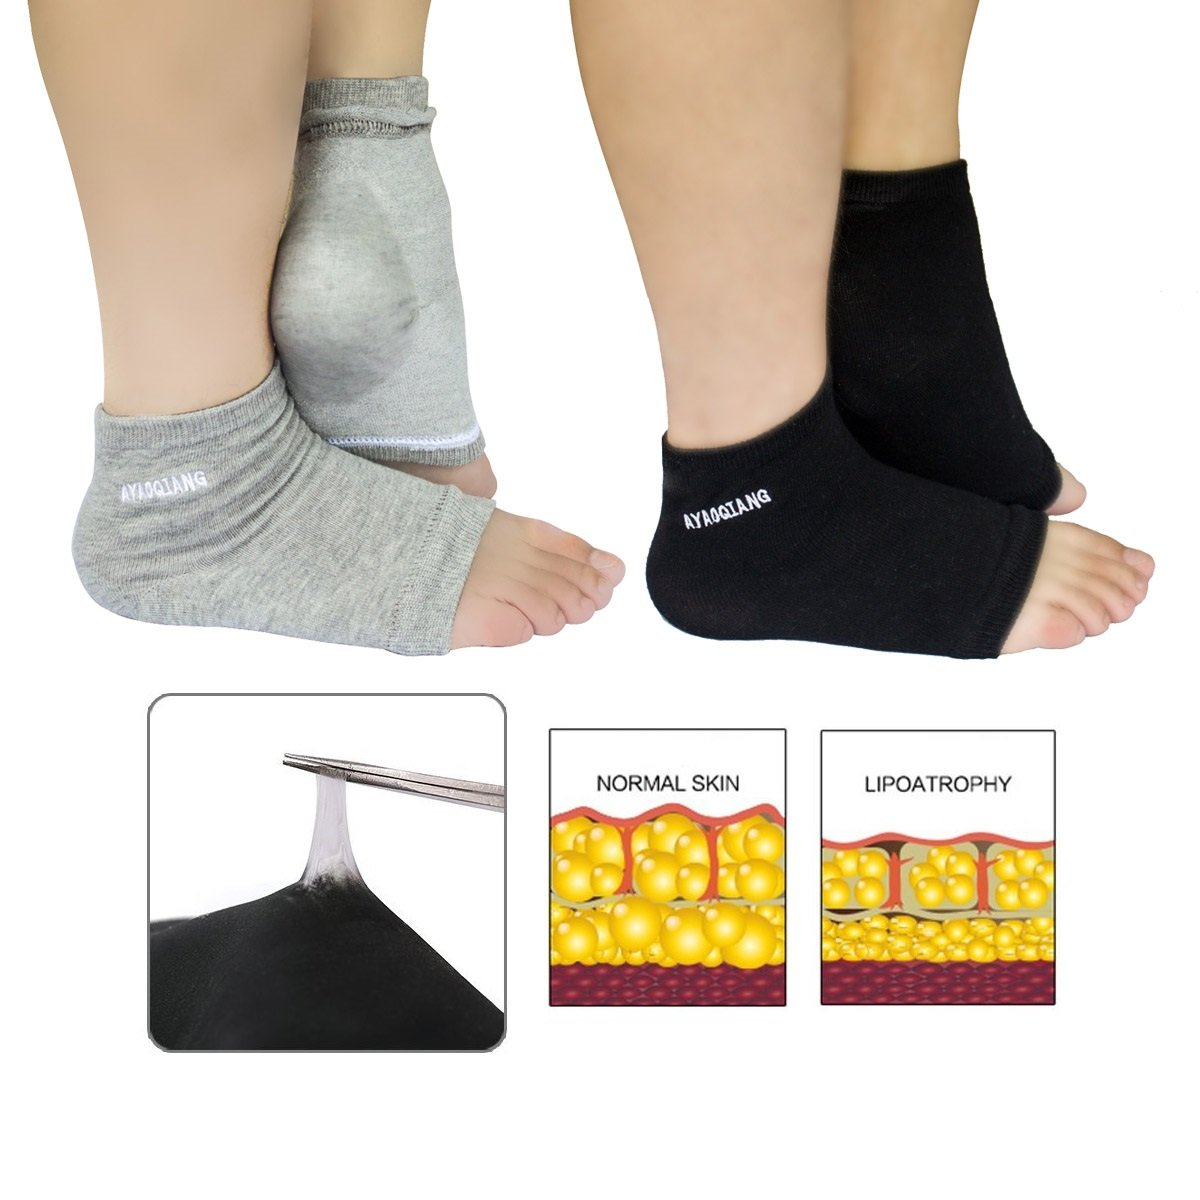 AYAOQIANG Moisturizing Gel Spa Socks for Moisturize Soften Repair Cracked Skin-2 Pair (Green and Purple) 01